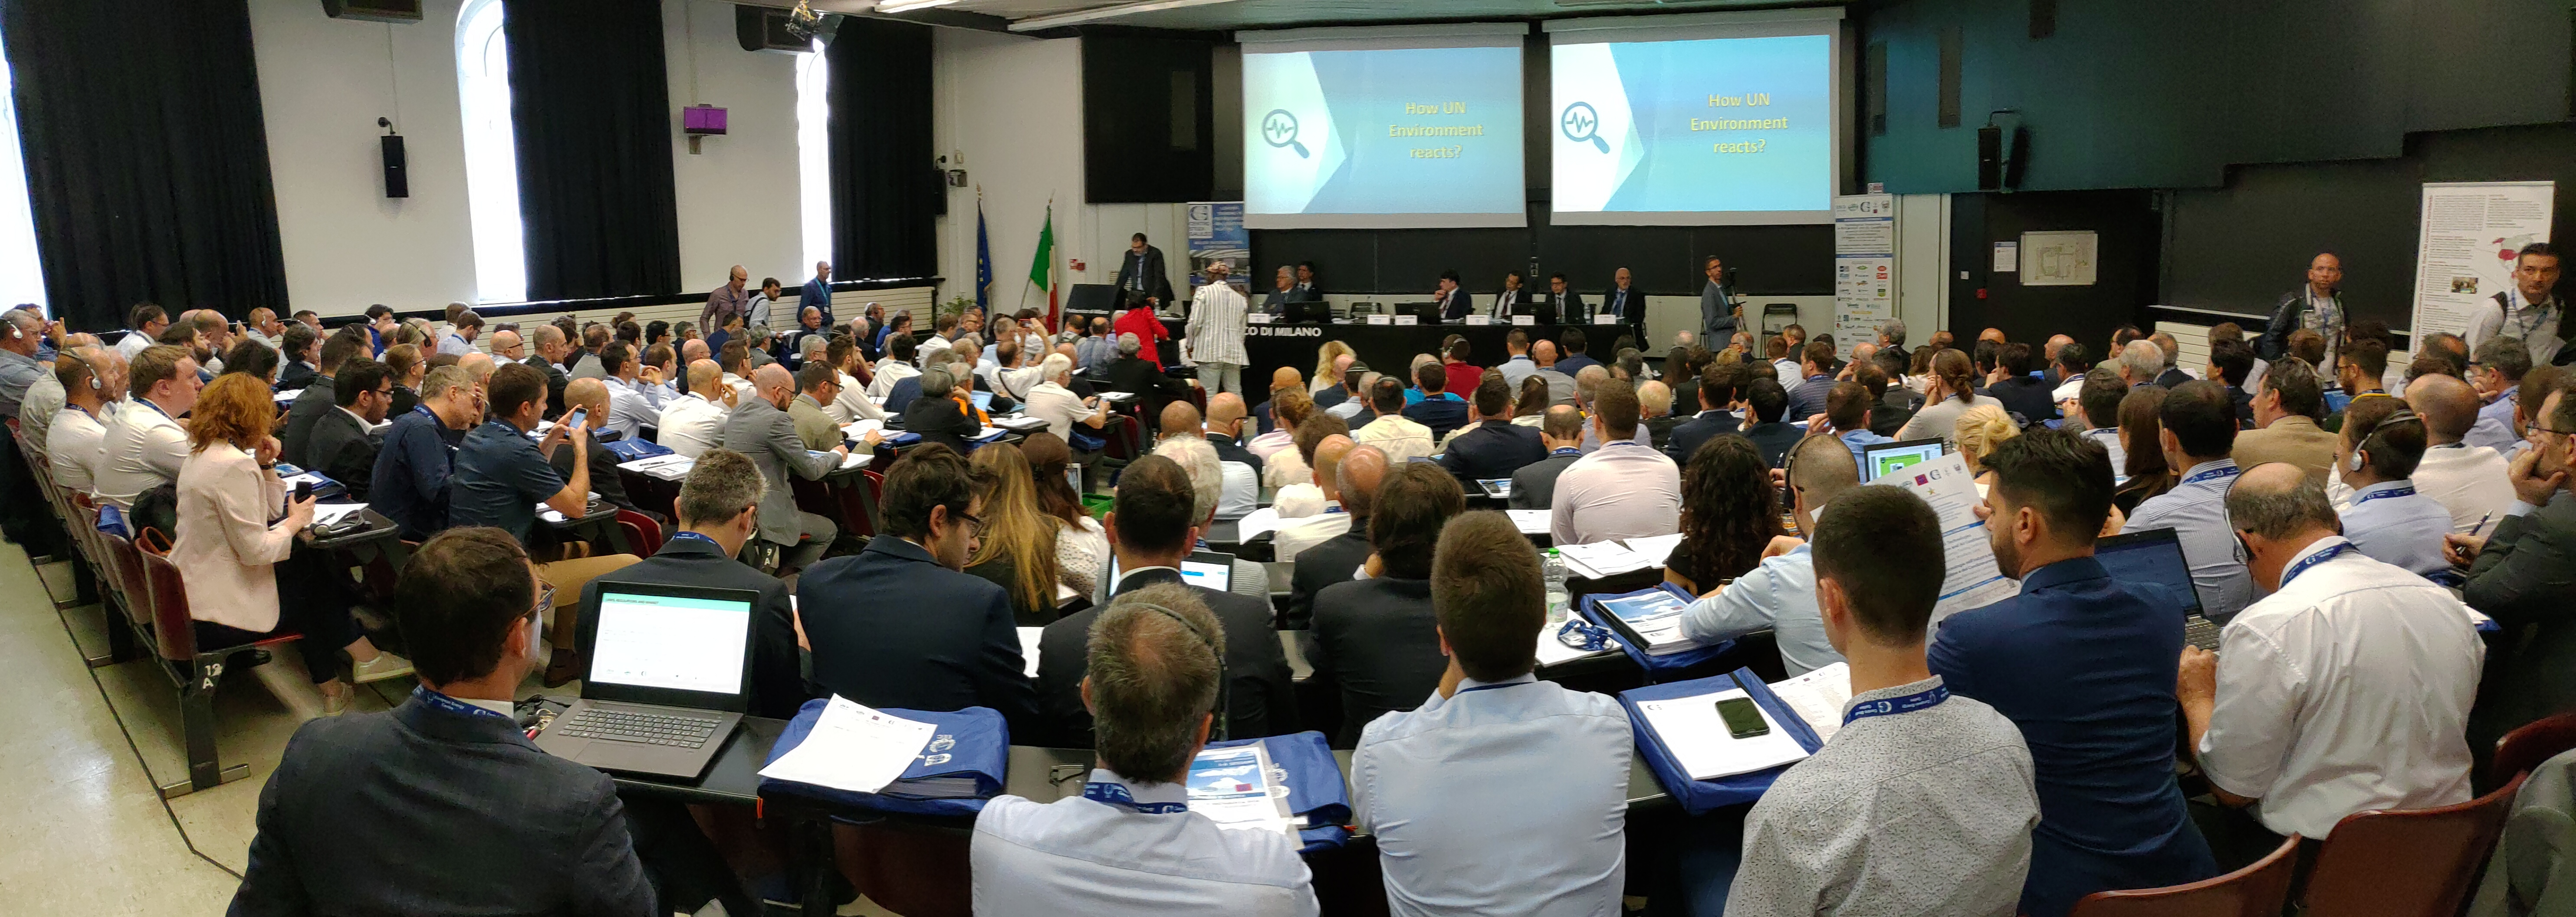 18th European Conference draws over 300 representatives from HVACR industry